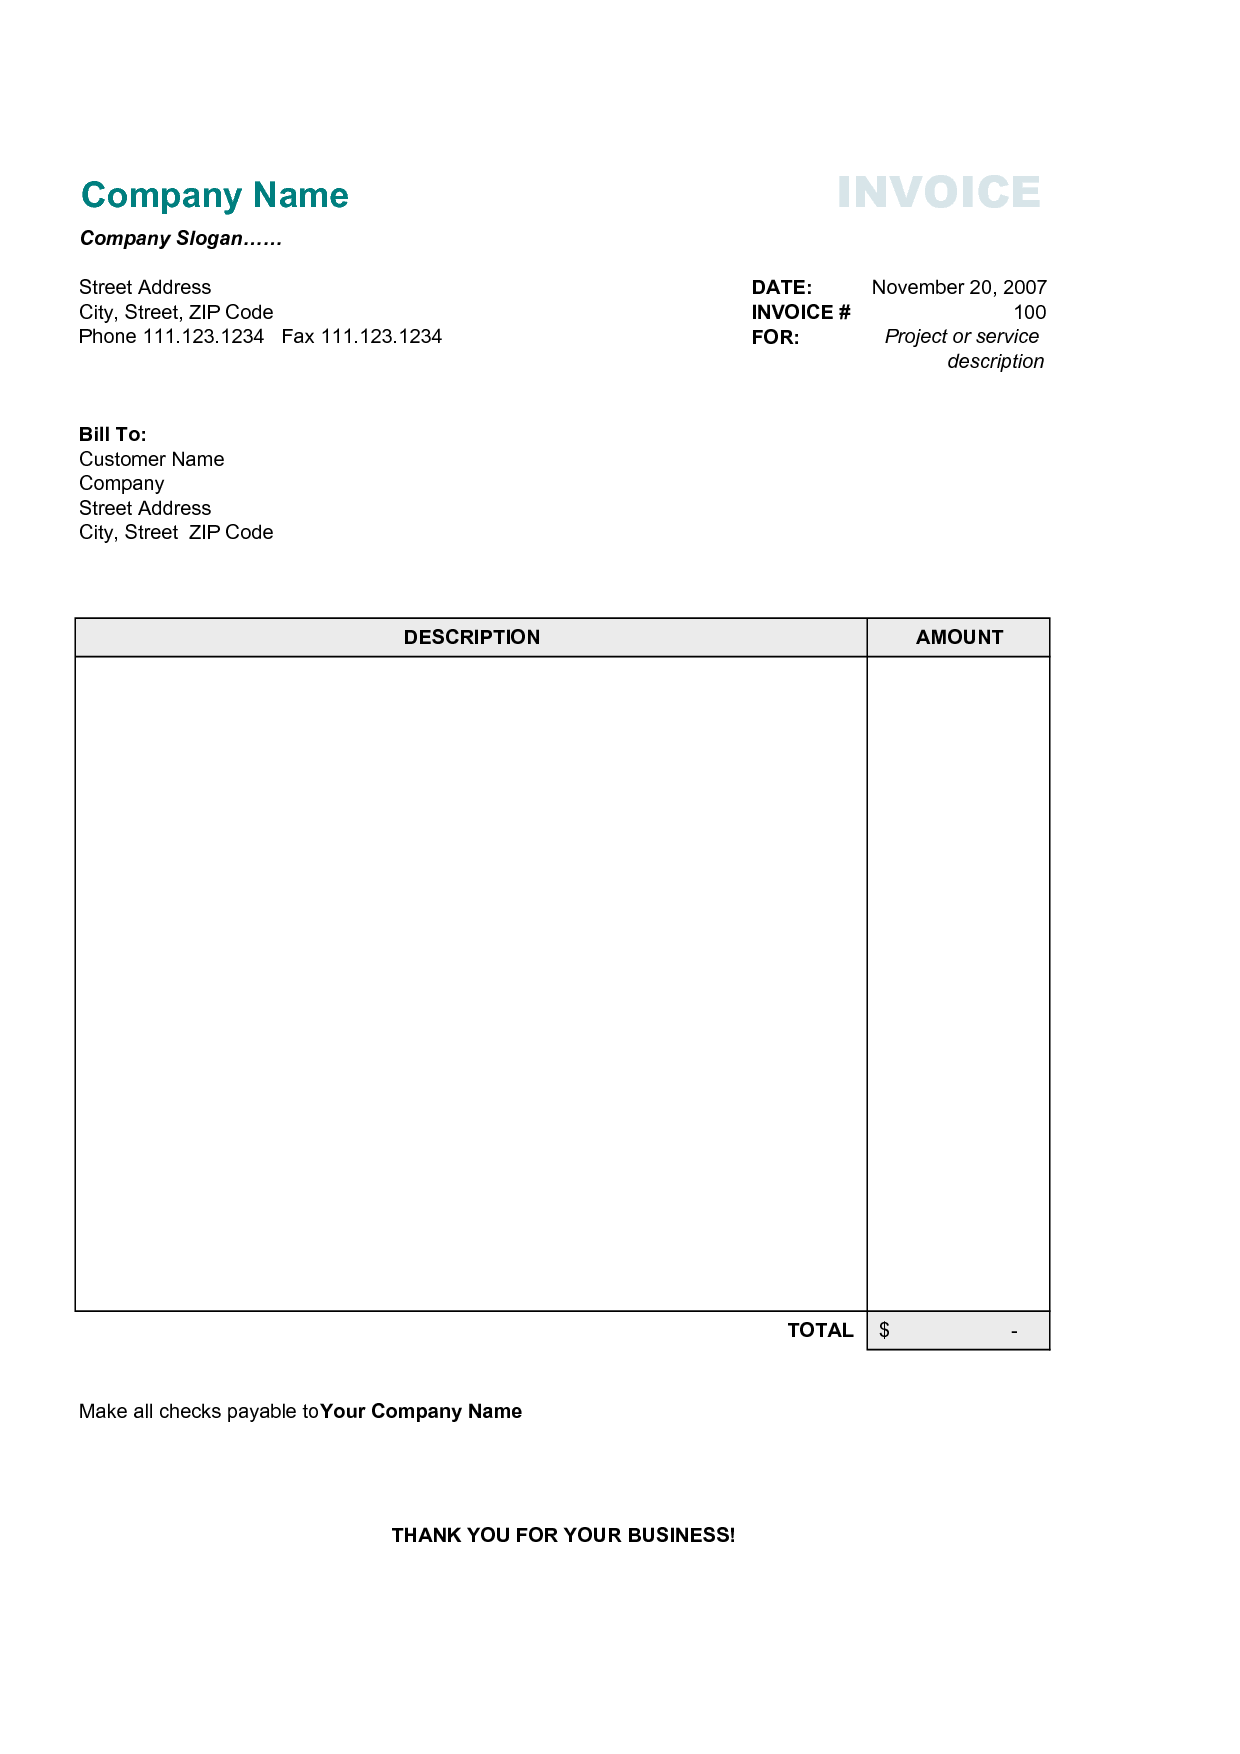 Free Business Invoice Template By Heroes On Parade NAyggXB An - Online bill template